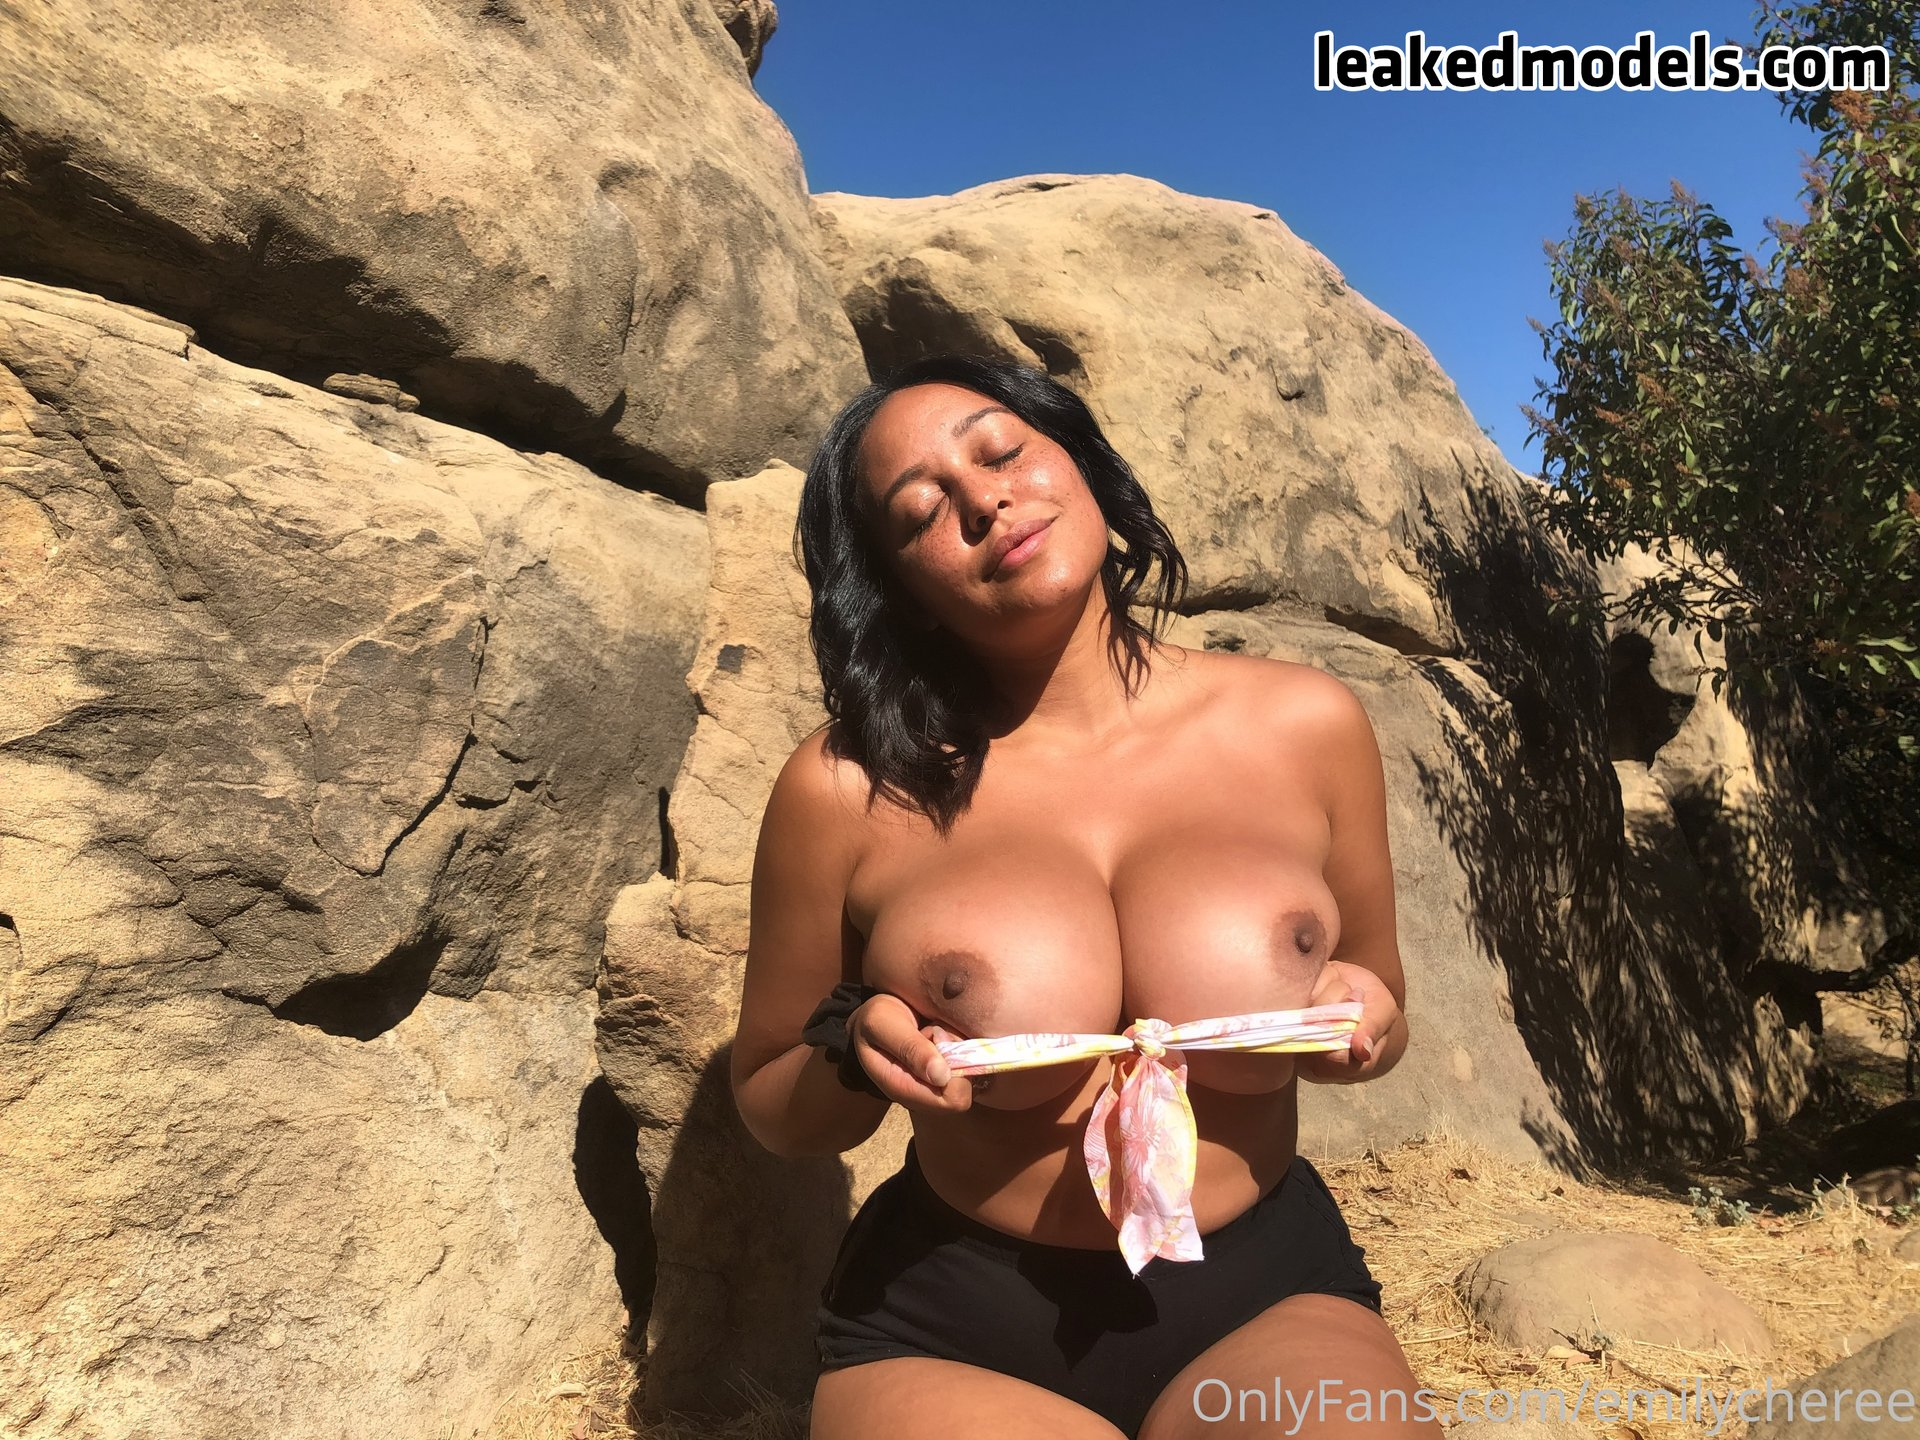 Emily Cheree – emilycheree Onlyfans Leaks (10 Photos and 10 Videos)